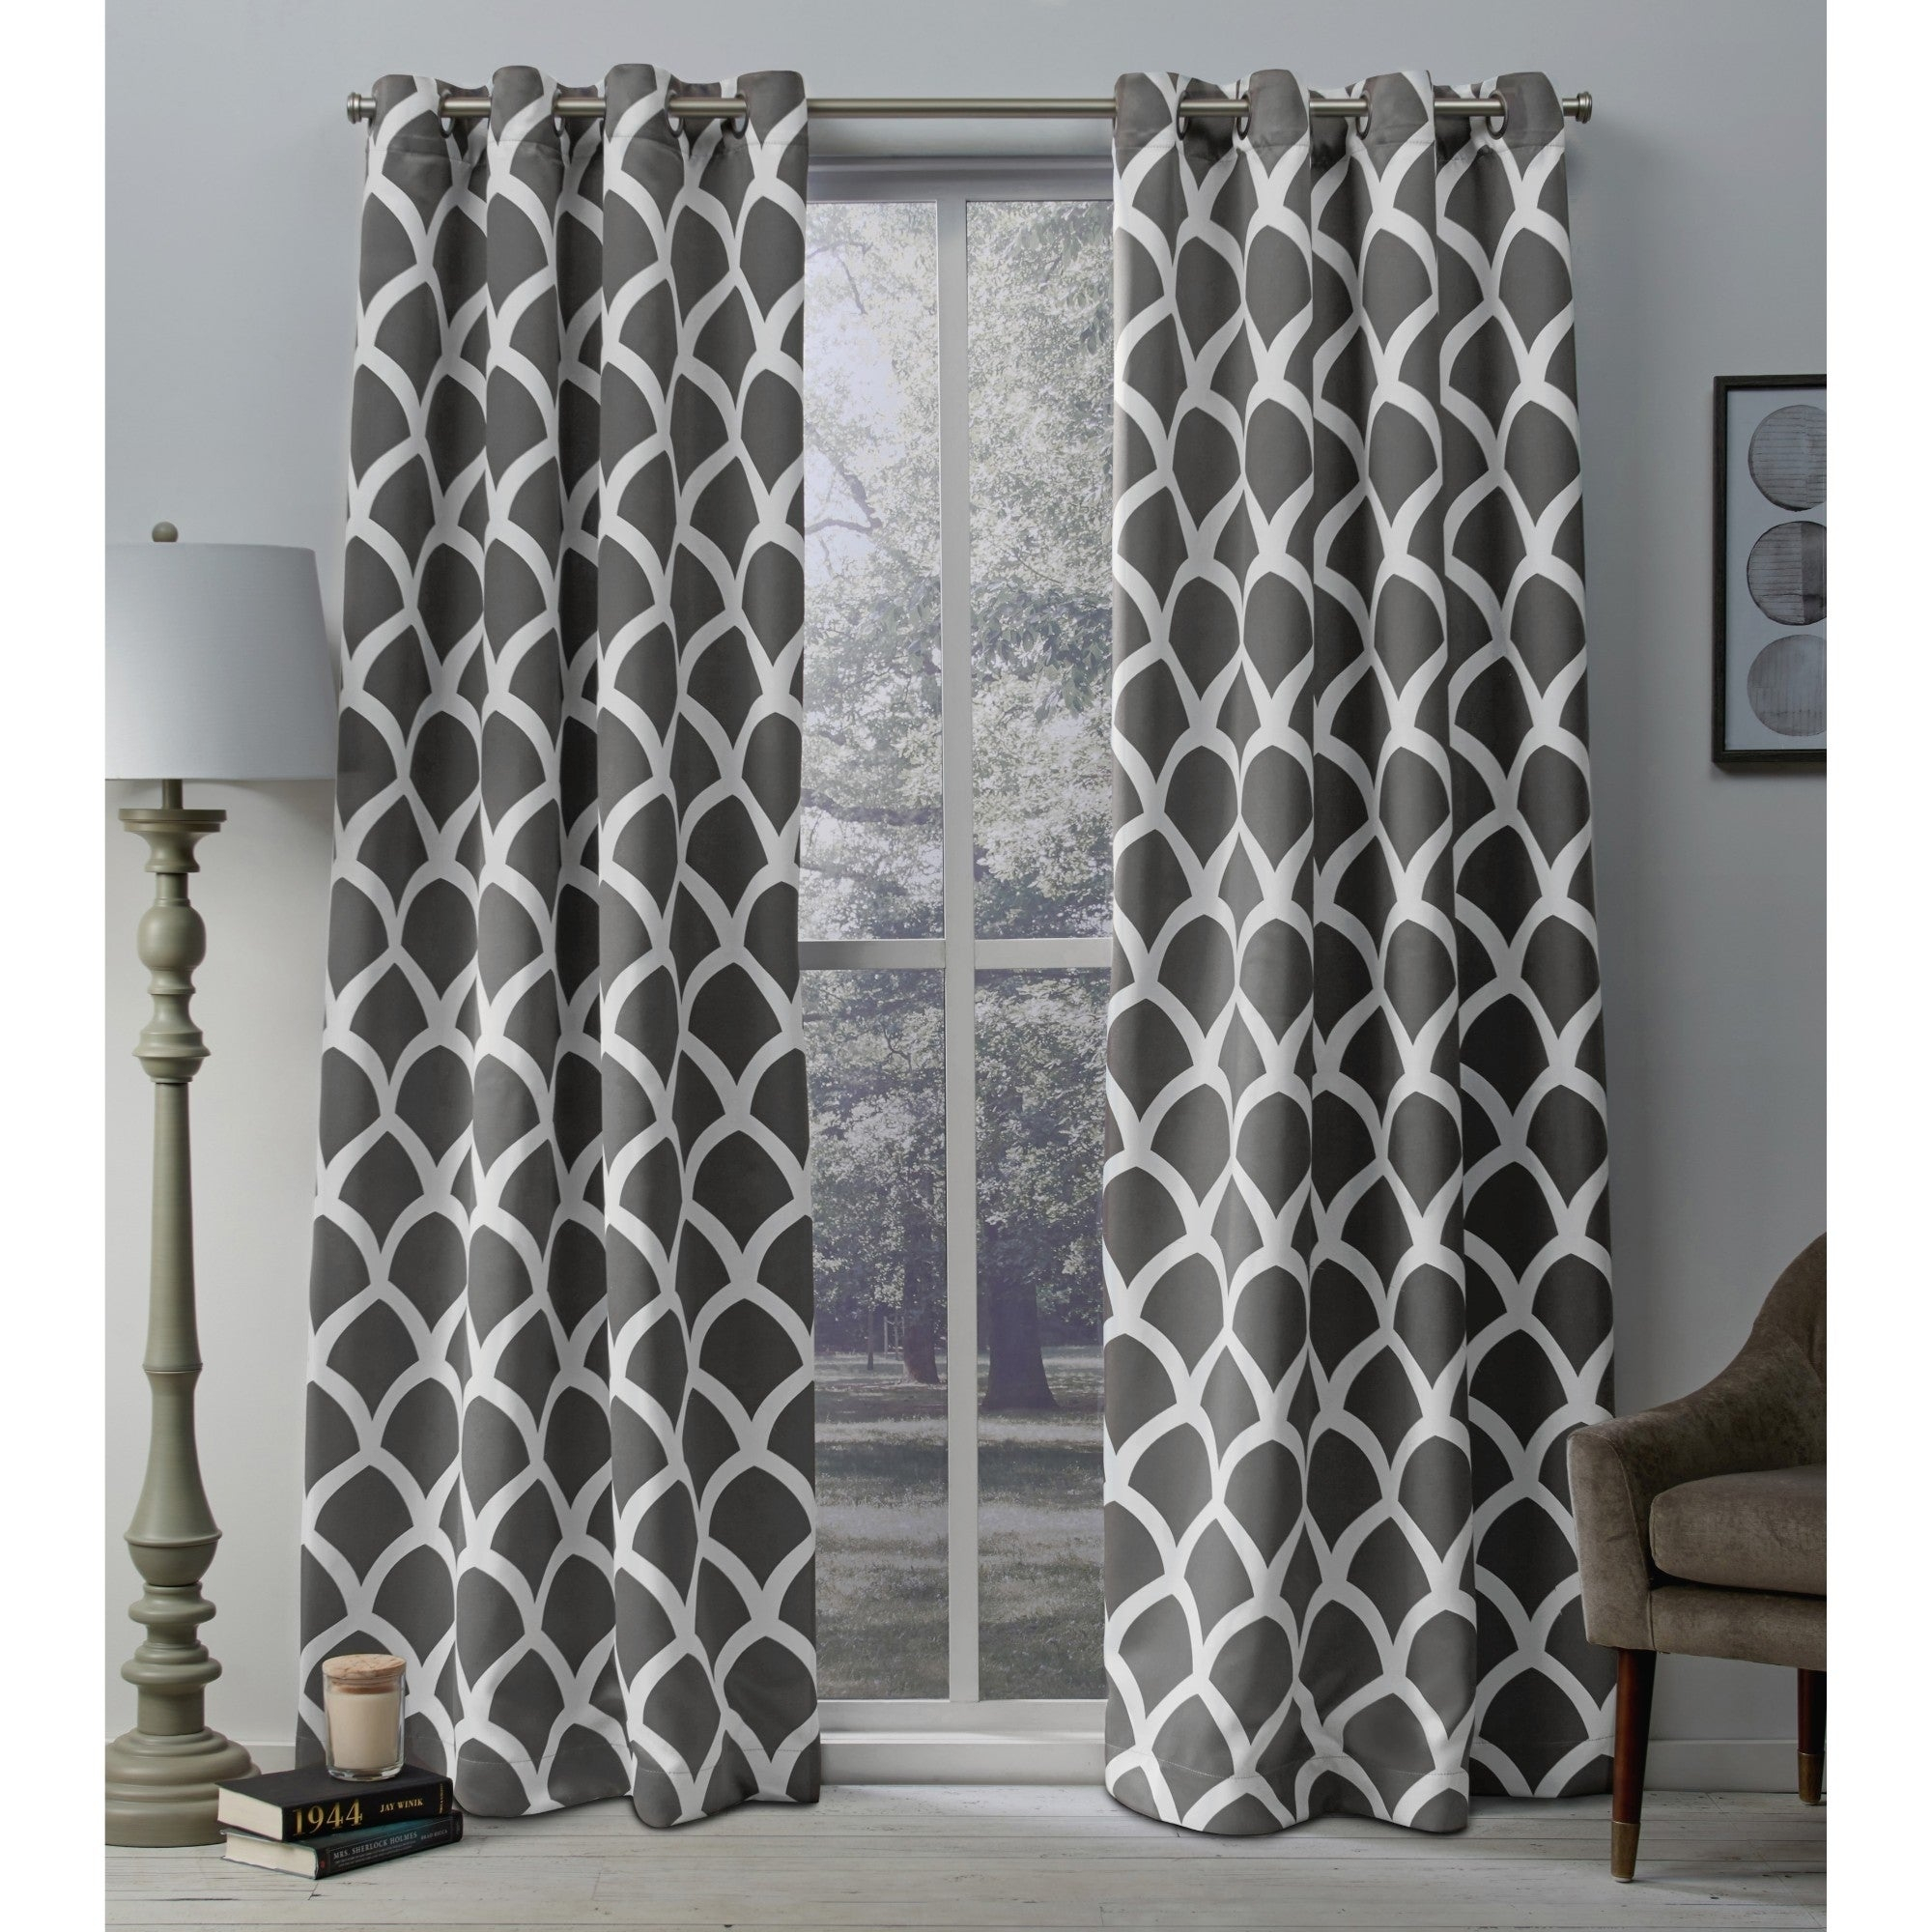 The Curated Nomad Ames Sateen Woven Blackout Grommet Top Curtain Panel Pair With Regard To The Curated Nomad Duane Blackout Curtain Panel Pairs (View 8 of 30)